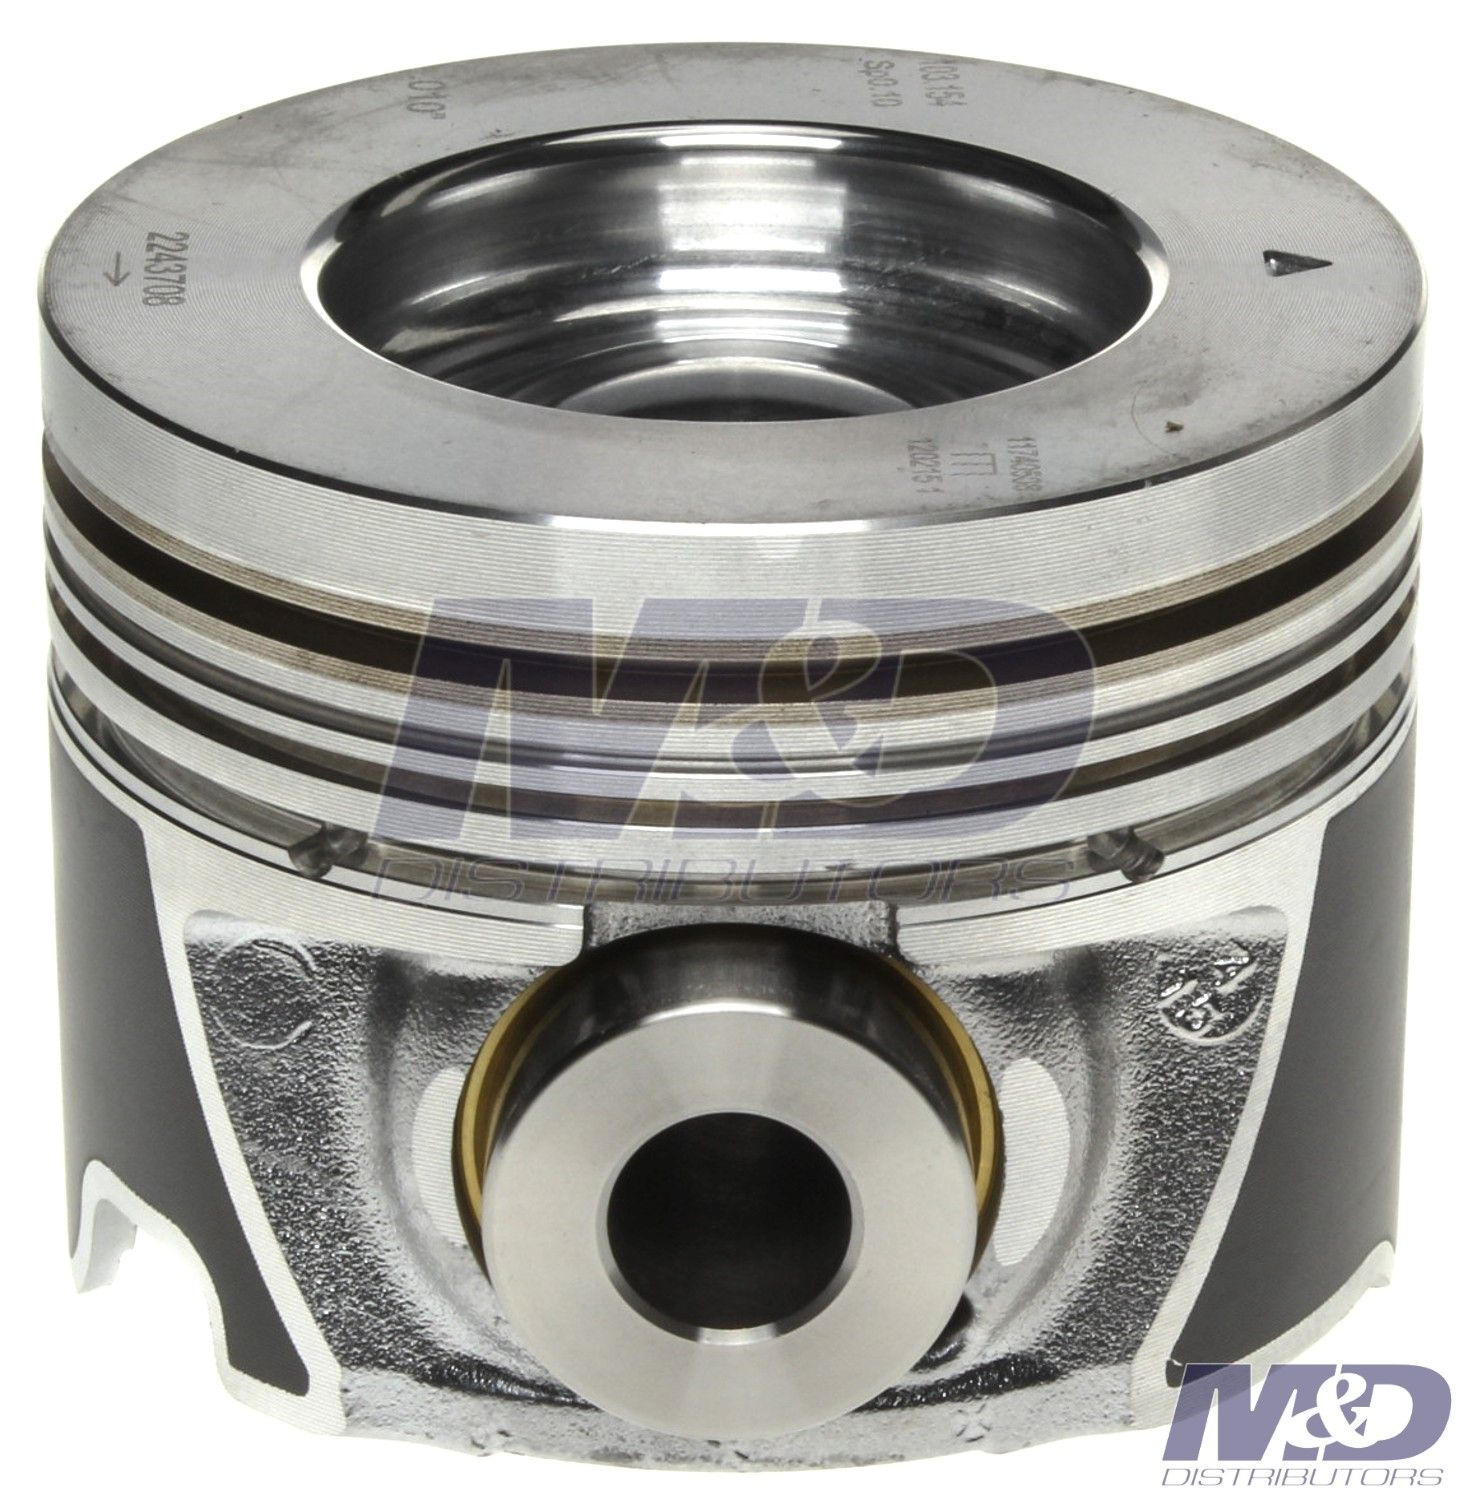 hight resolution of mahle original 0 010 right bank piston